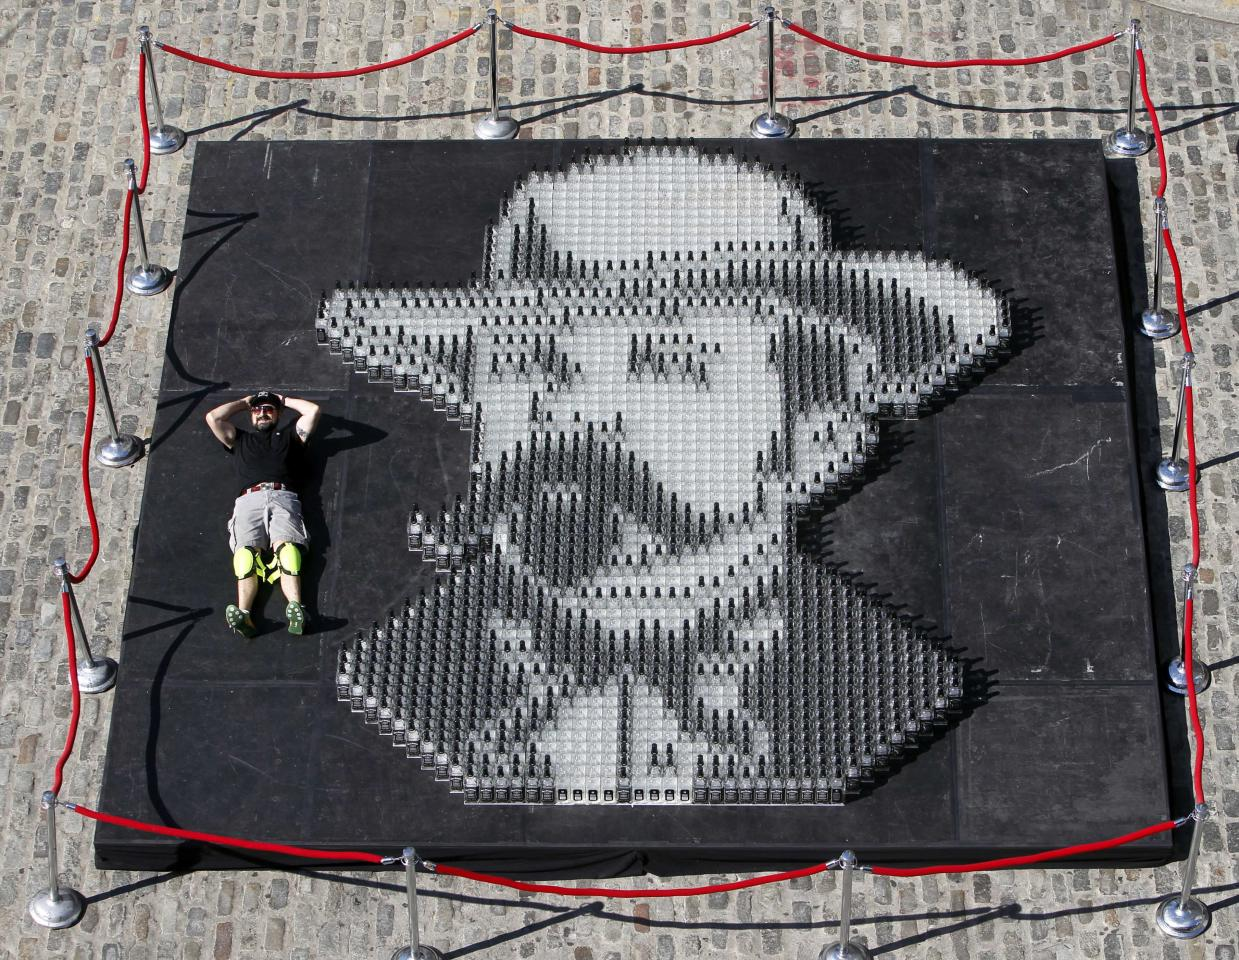 "Artist Herb Williams, of Nashville, Tenn., poses with his Guinness World Record-breaking mosaic, a portrait of ""Mr. Jack"" made from over 2000 empty Jack Daniel's Tennessee Whiskey bottles, during an event celebrating the brand's 161st birthday at South Street Seaport, Thursday, Sept. 1, 2011 in New York. Jack Daniel's celebrated it's 161st birthday by breaking 6 Guinness World Records during the event. (AP Photo/Jack Daniel's, Jason DeCrow)"